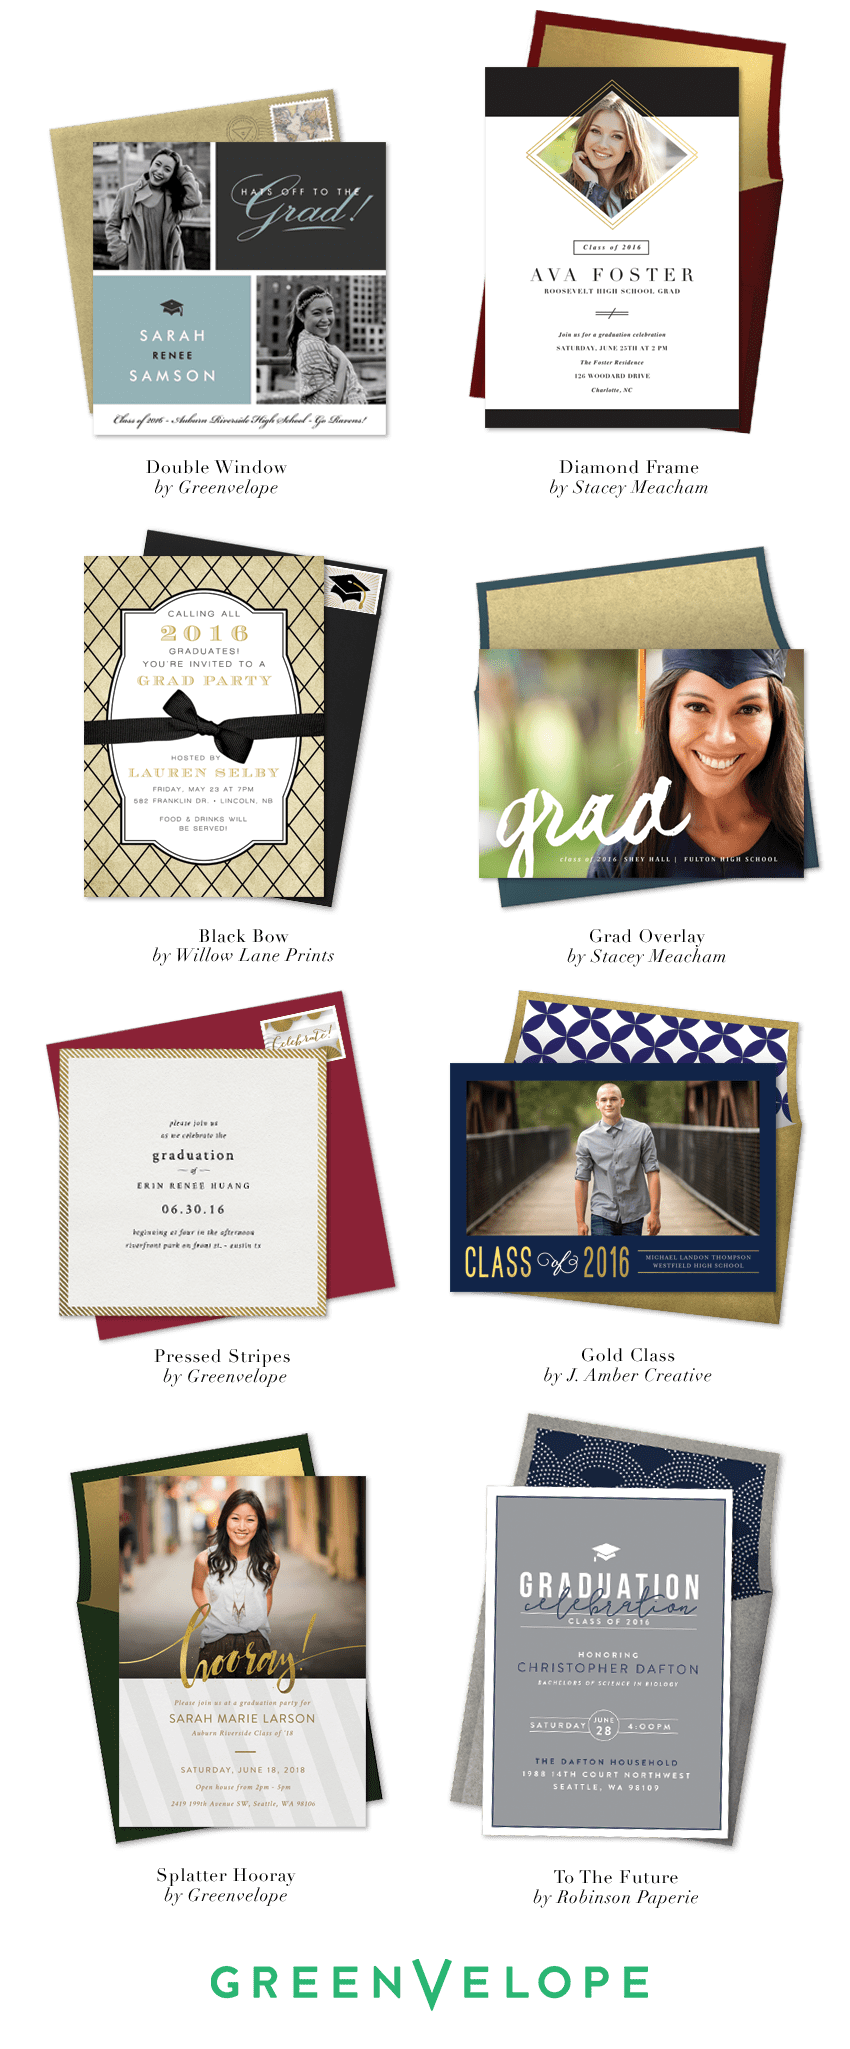 Graduation Announcements and Graduation Party Invitation Ideas ...